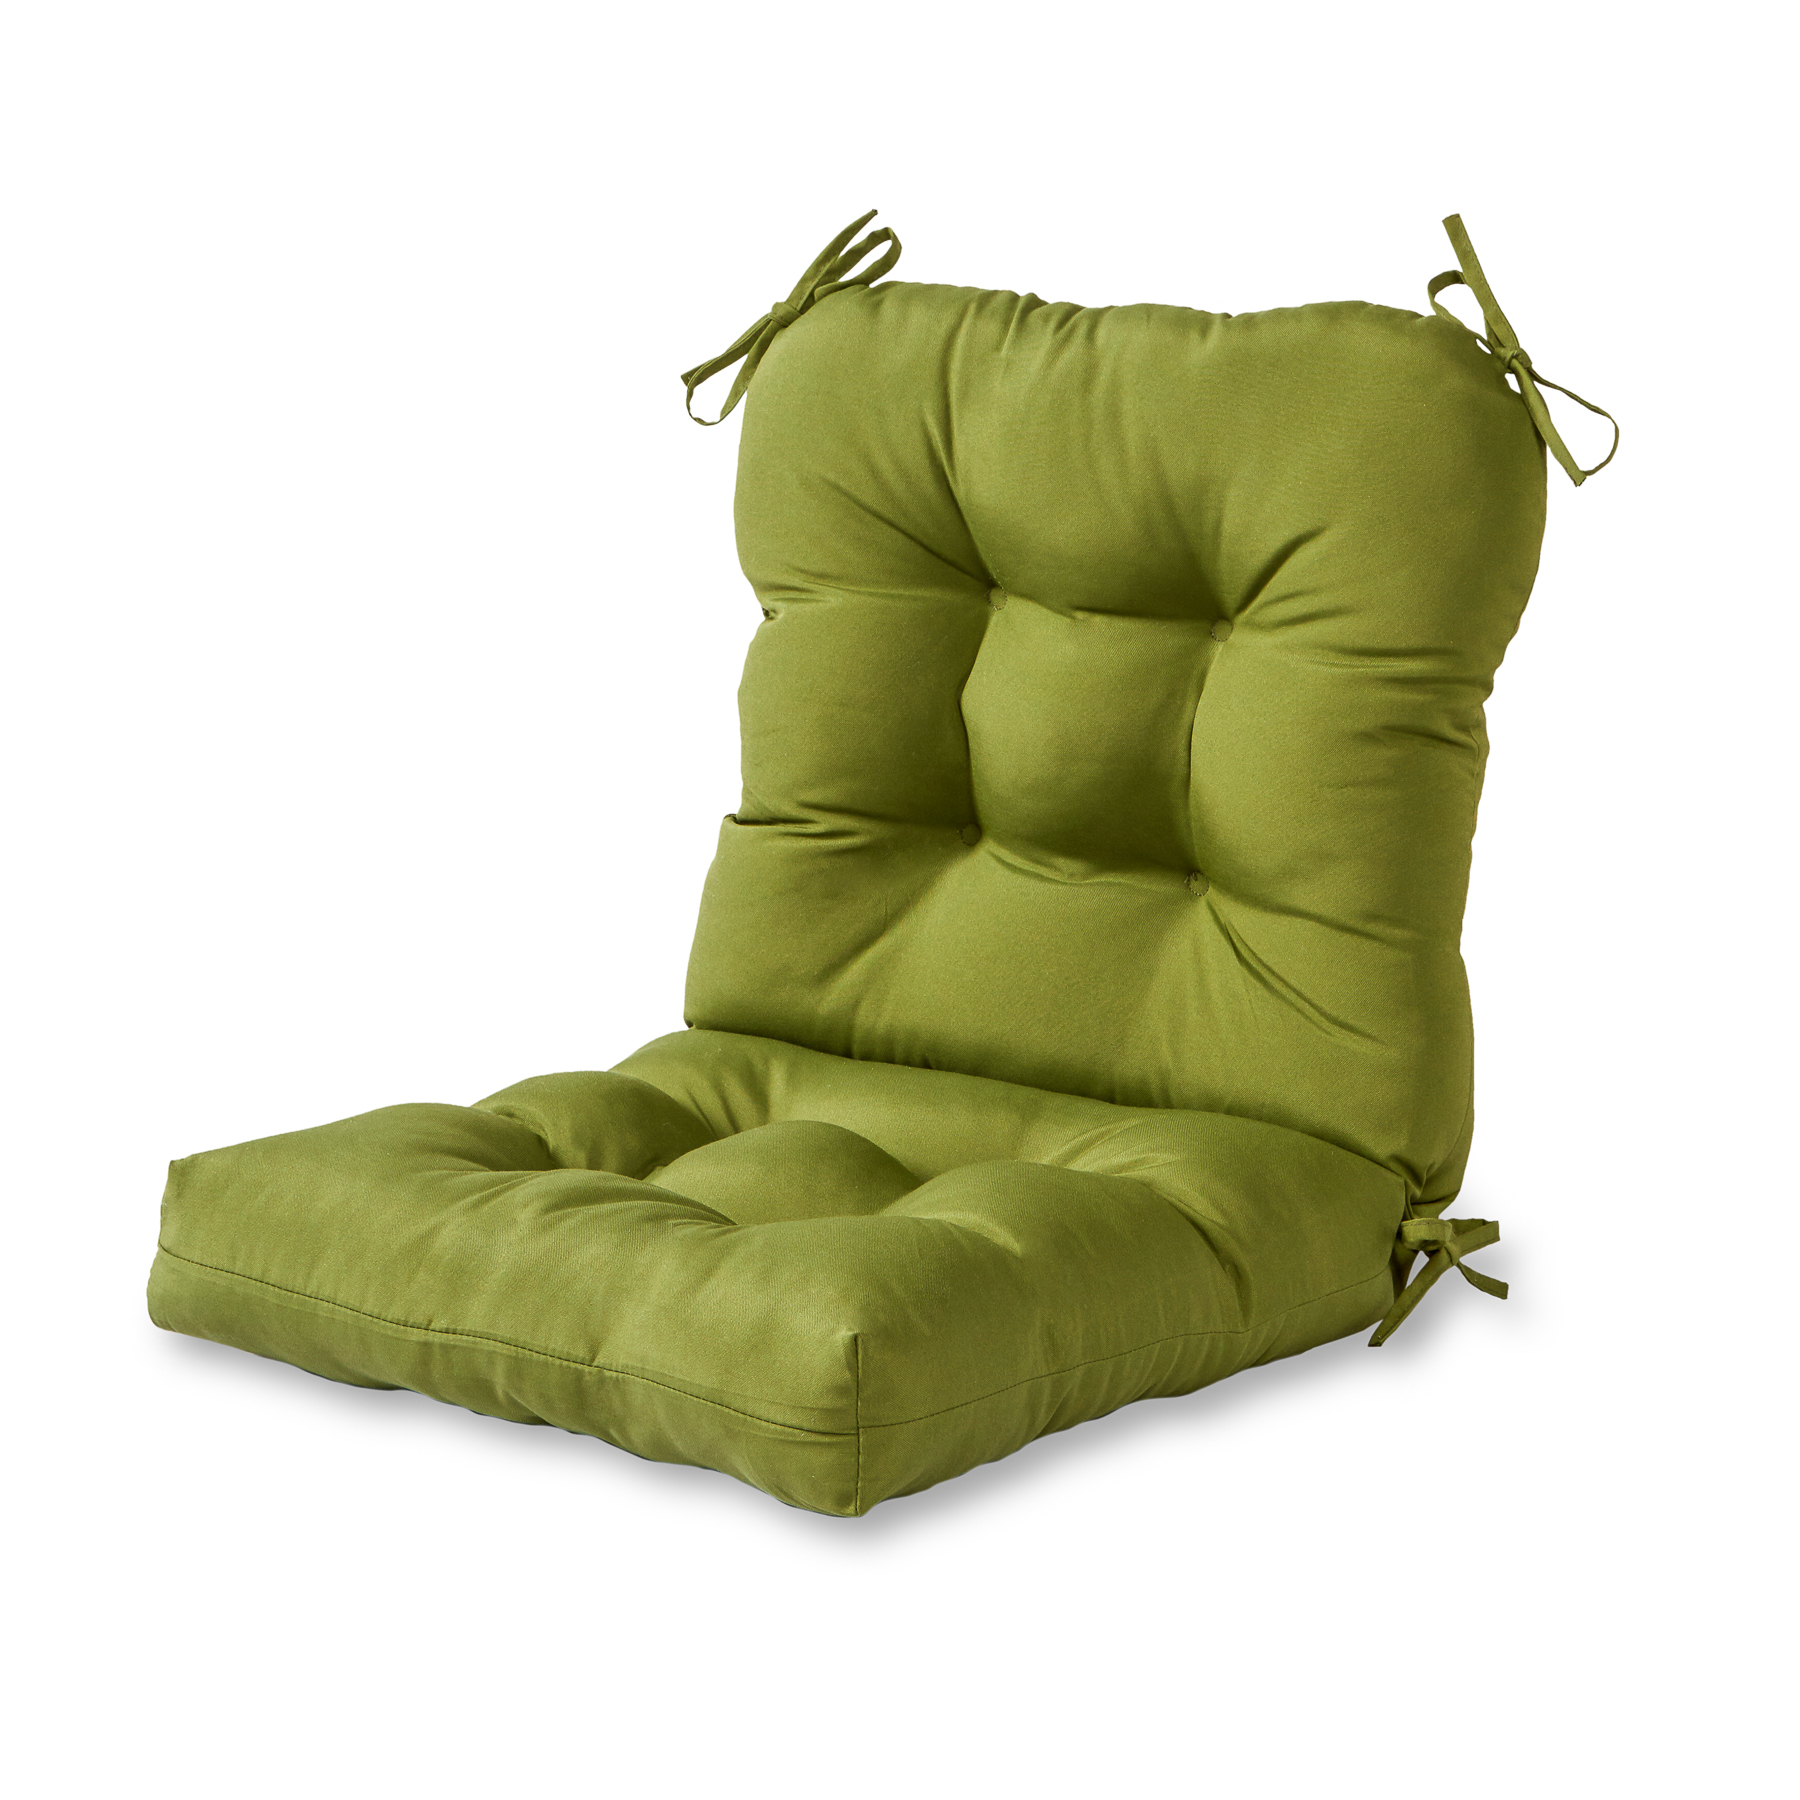 greendale home fashions solid outdoor chair cushion